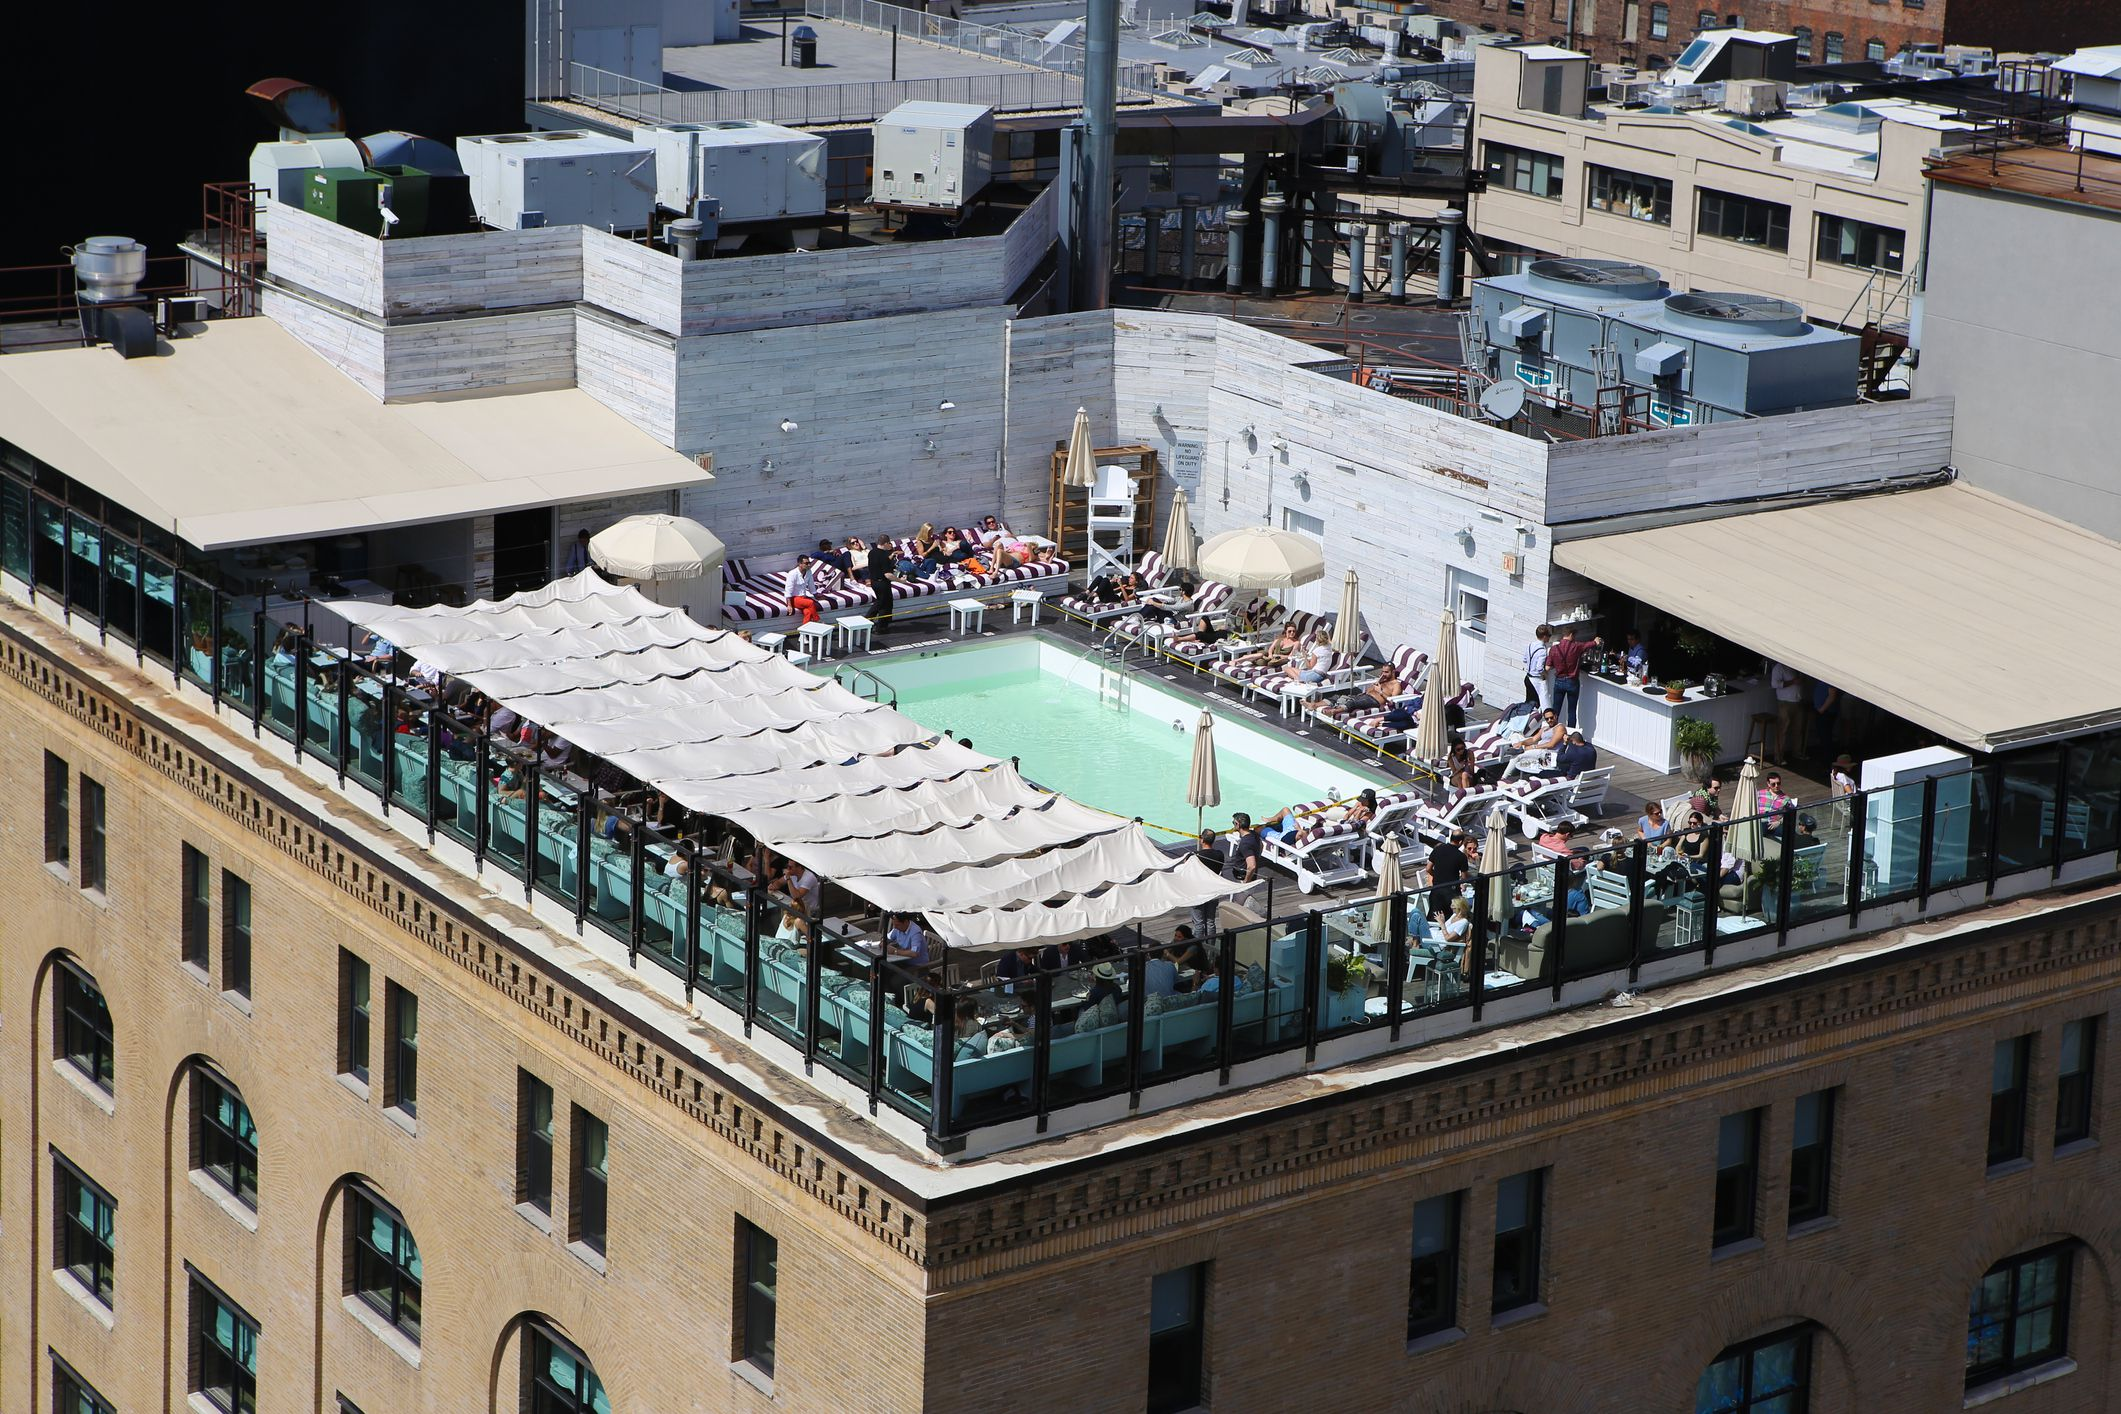 7 best hotel swimming pools in manhattan - Hotel new york swimming pool roof ...